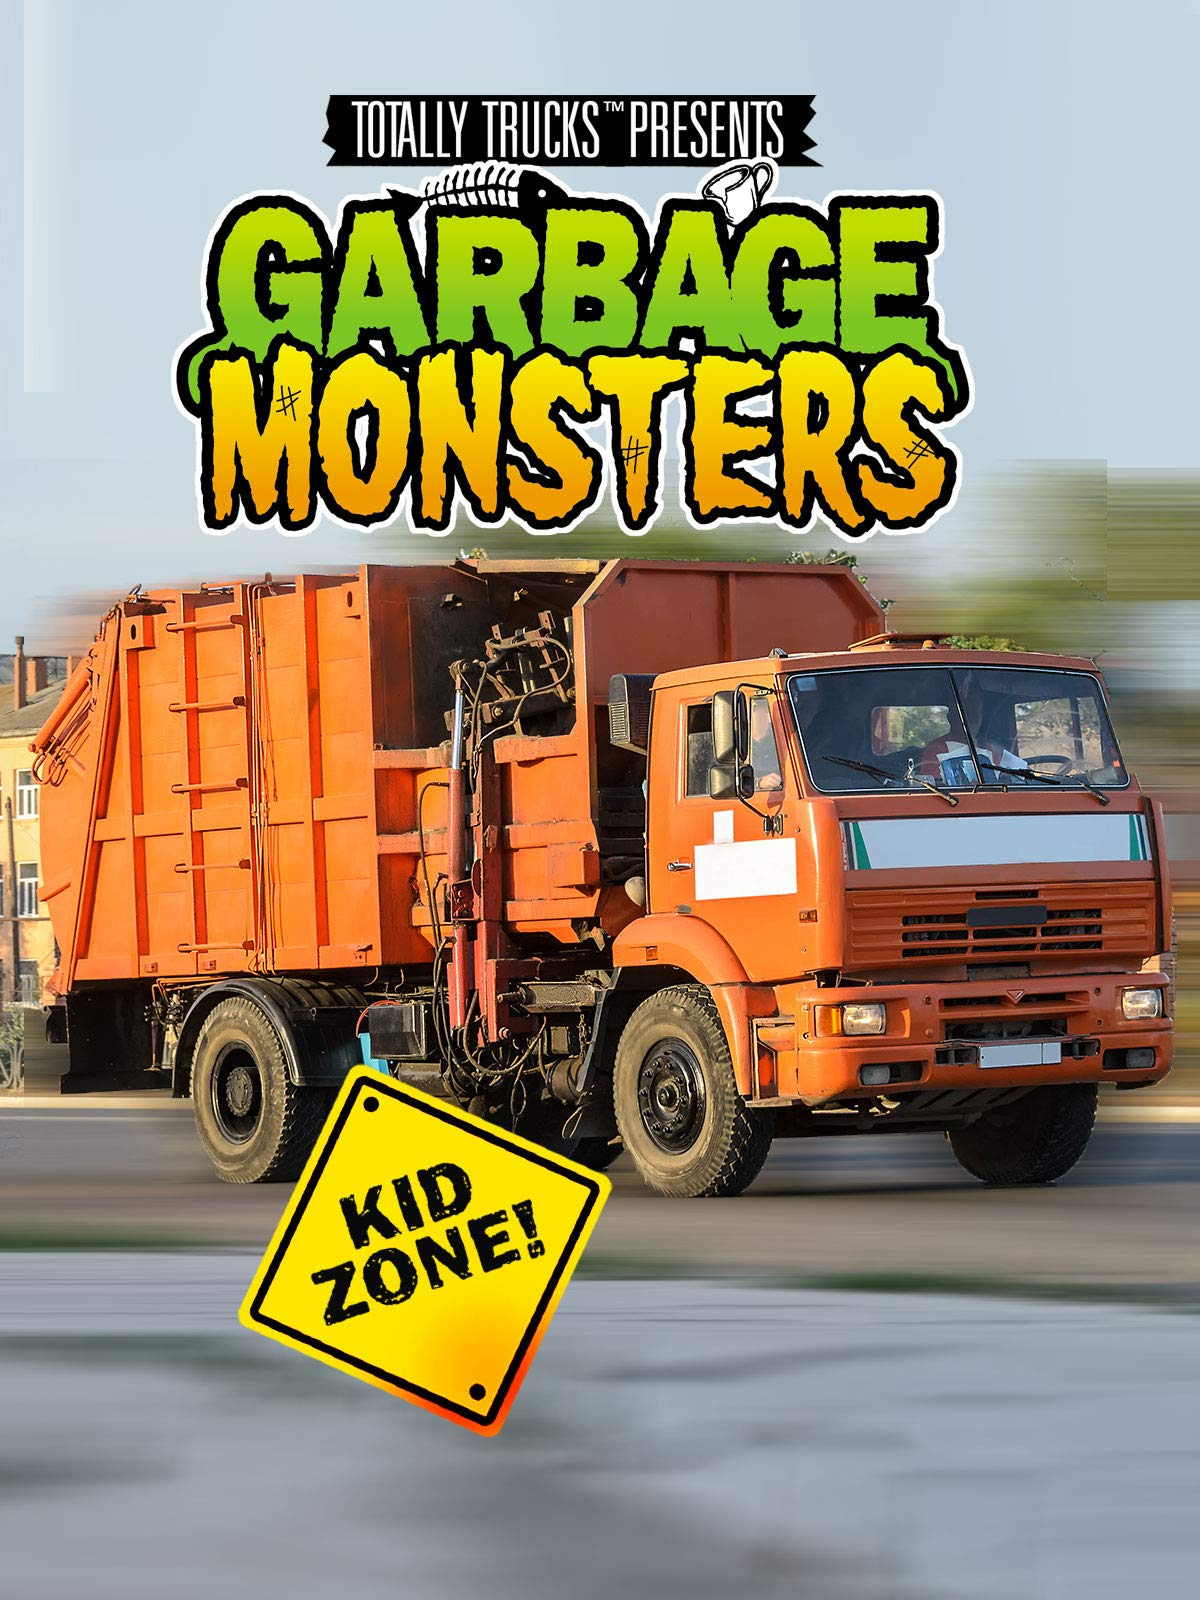 Totally Trucks - Garbage Monsters on Amazon Prime Video UK